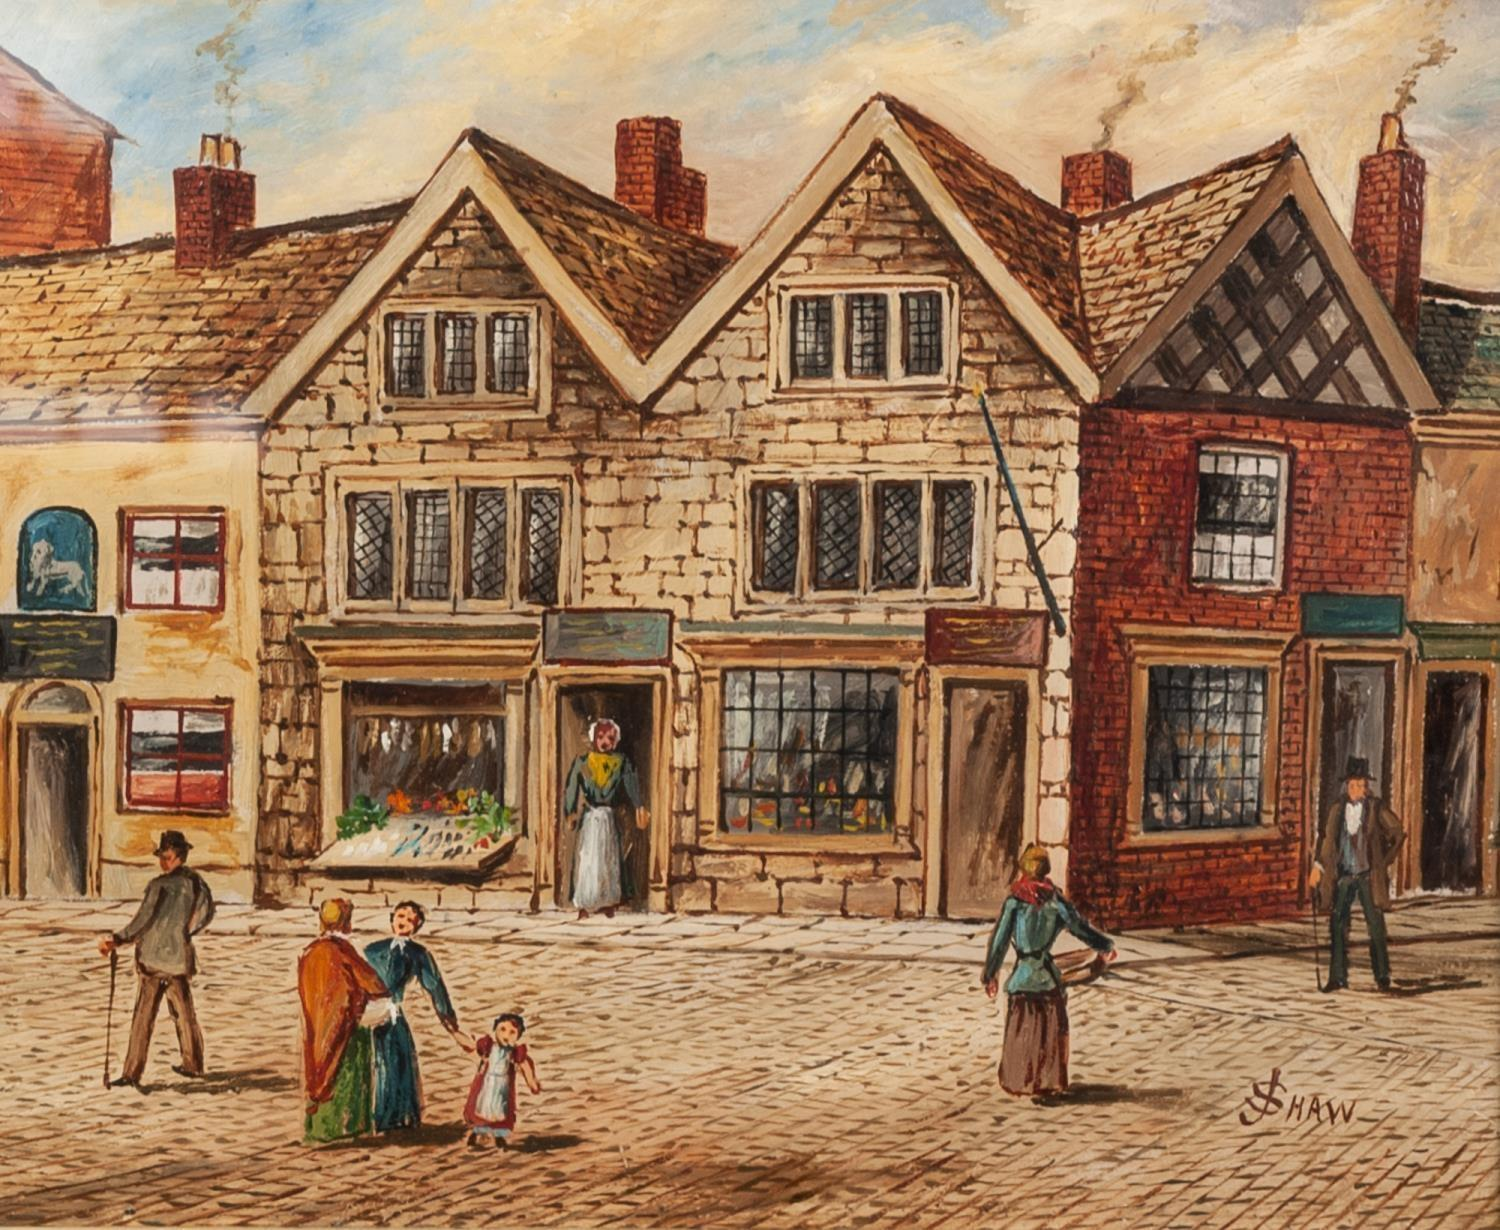 J SHAW 20th CENTURY OIL PAINTING Bygone street scene, figures by shops and public house top of